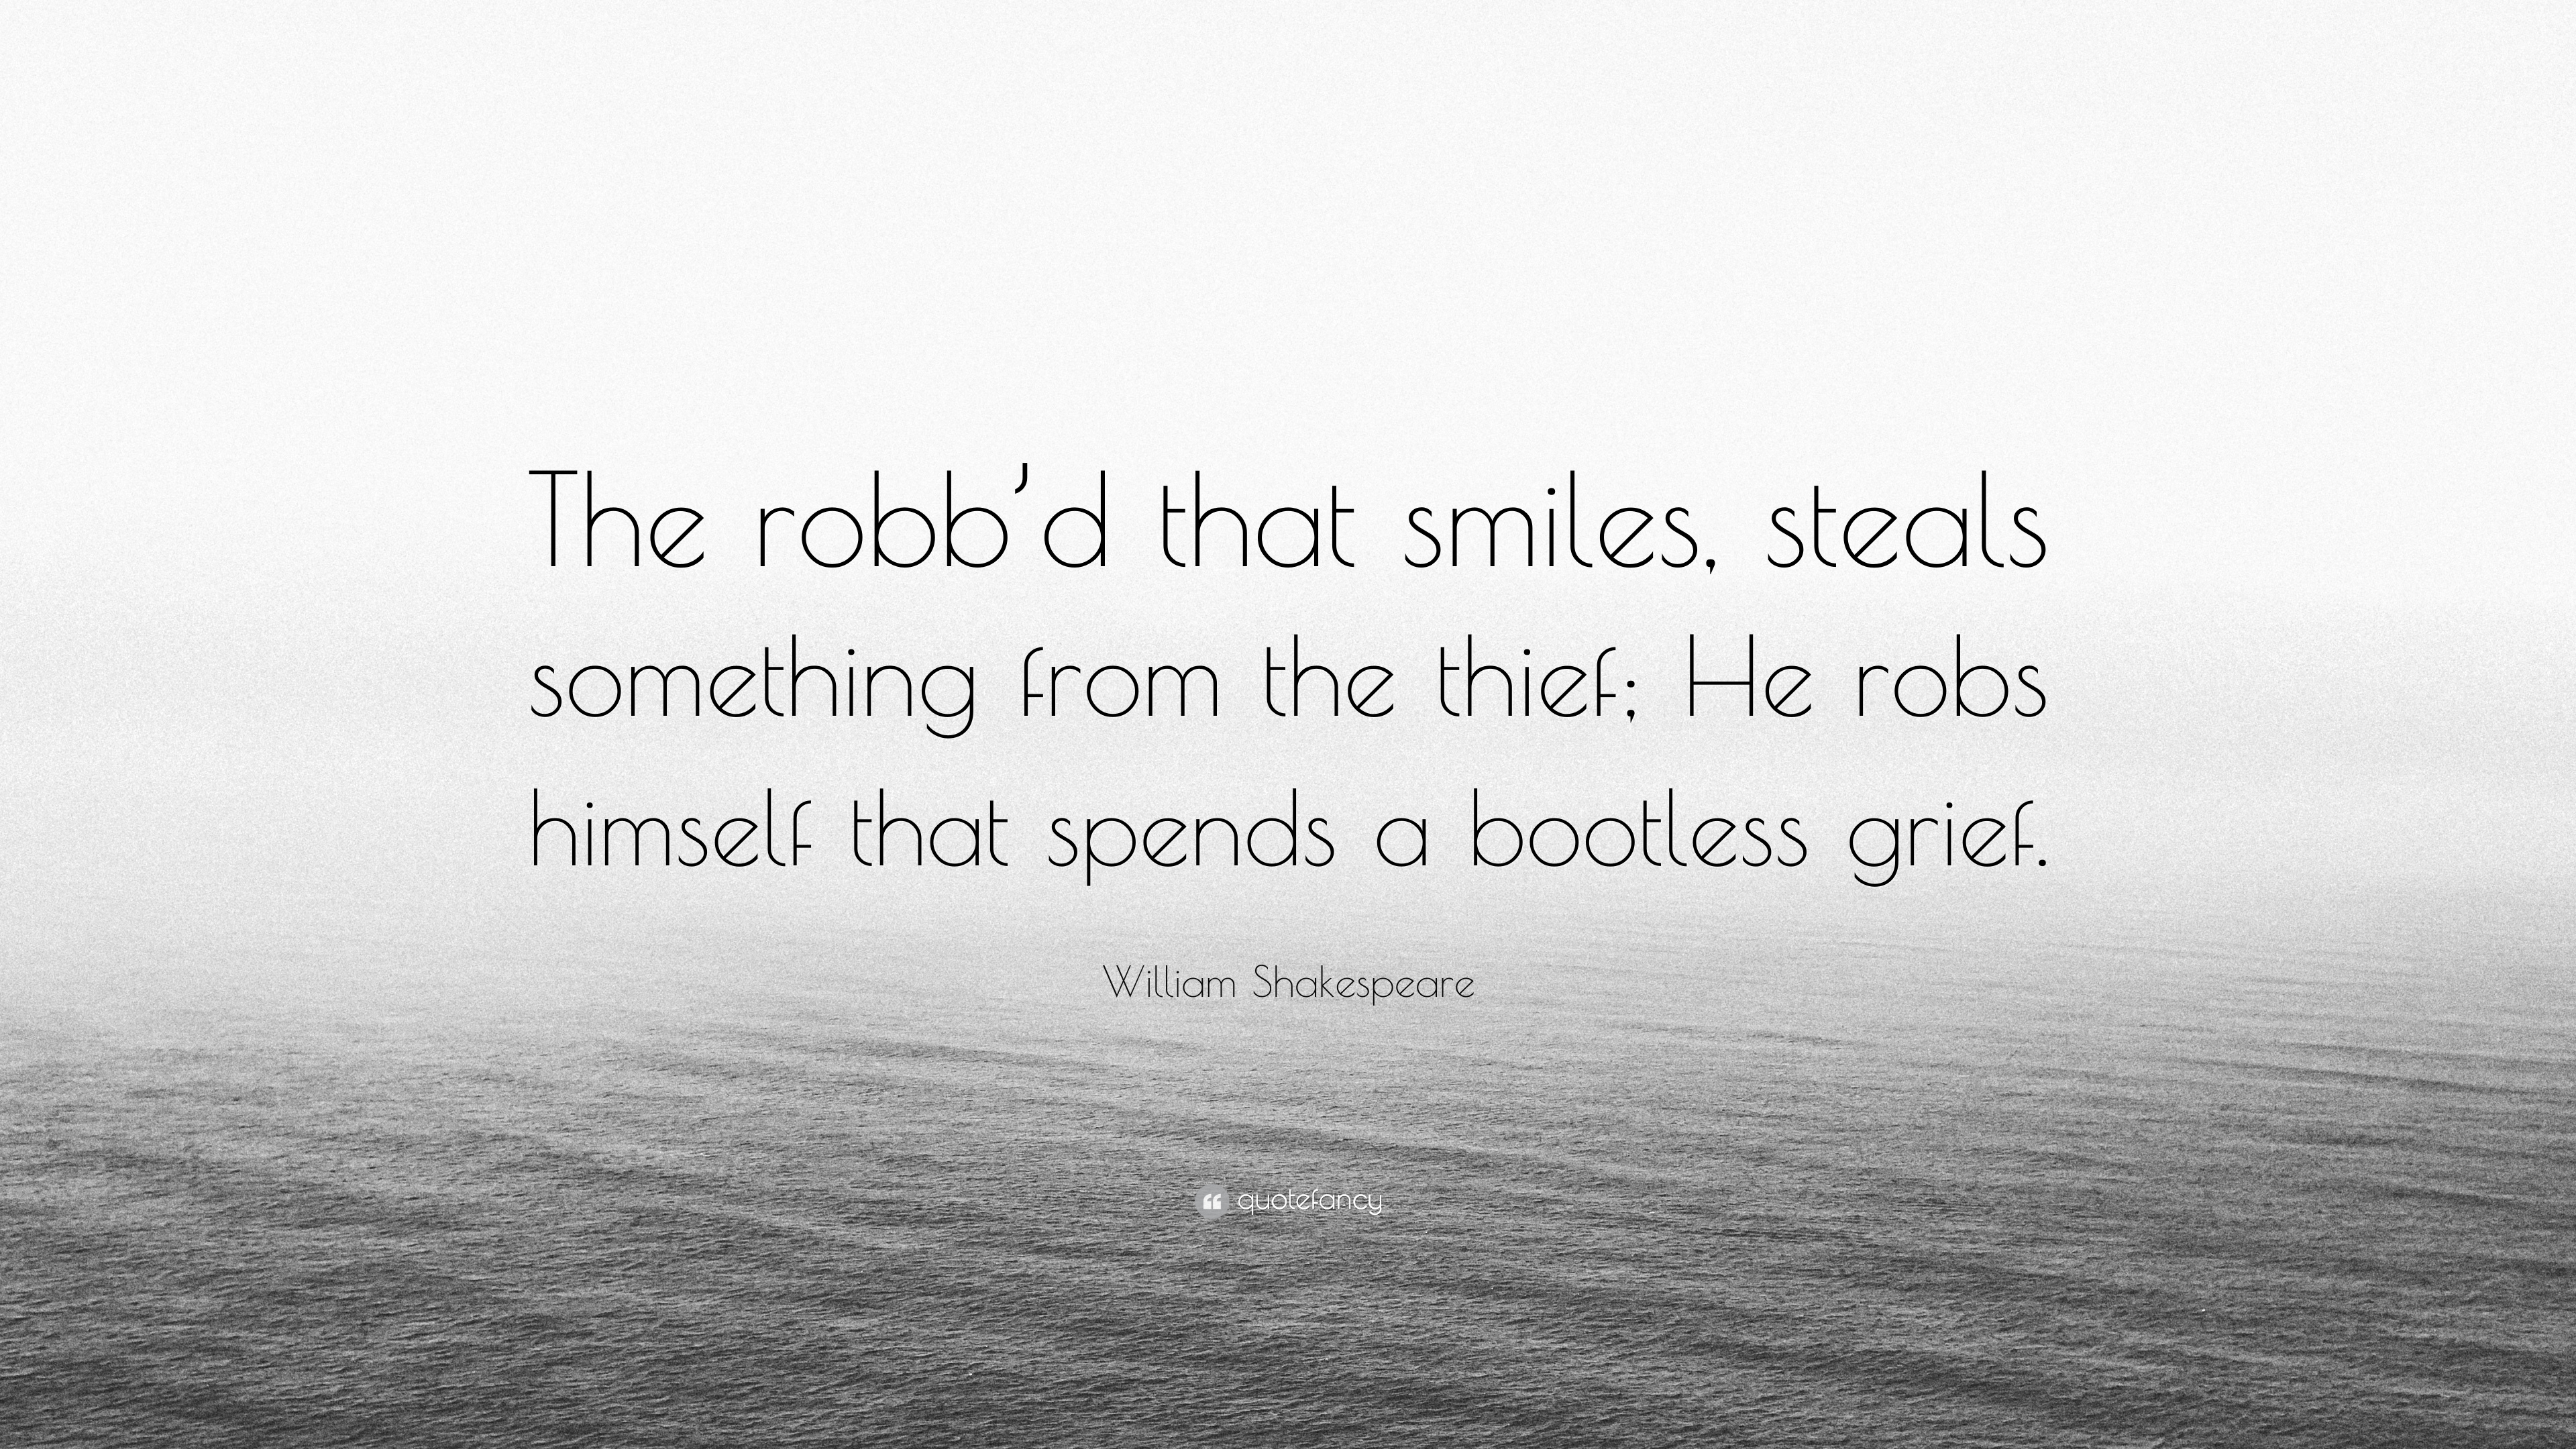 William Shakespeare Quote The Robbd That Smiles Steals Something